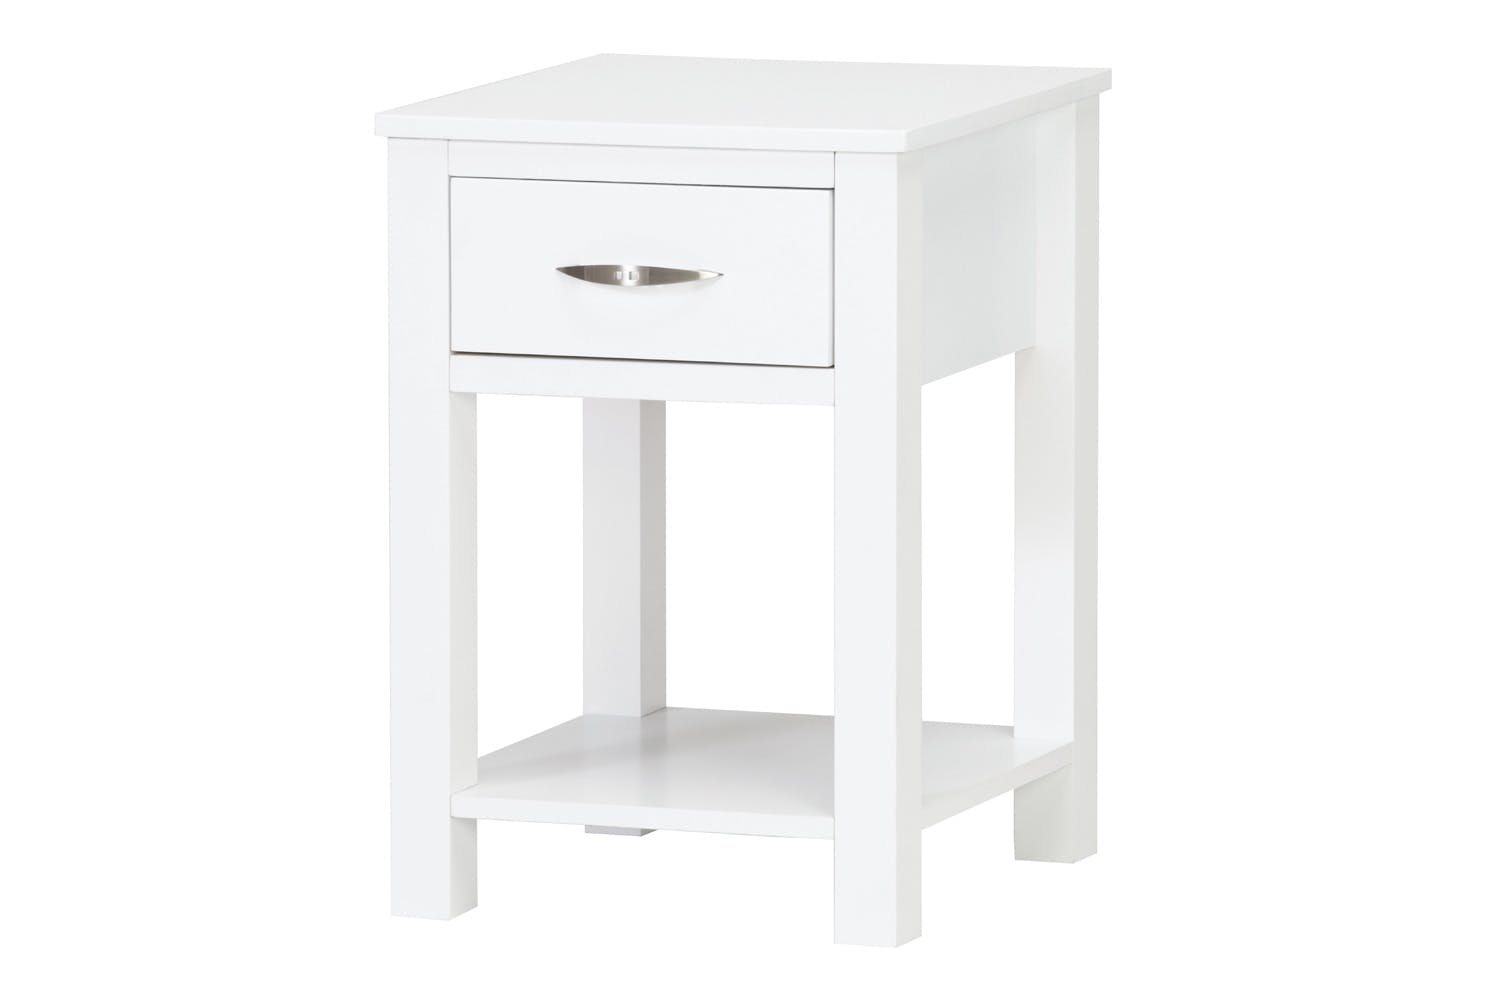 galway bedside debonaire furniture harvey norman white linon accent table wishlist compare outdoor pillows brass rectangular coffee uttermost gin cube long modern bar stools bath